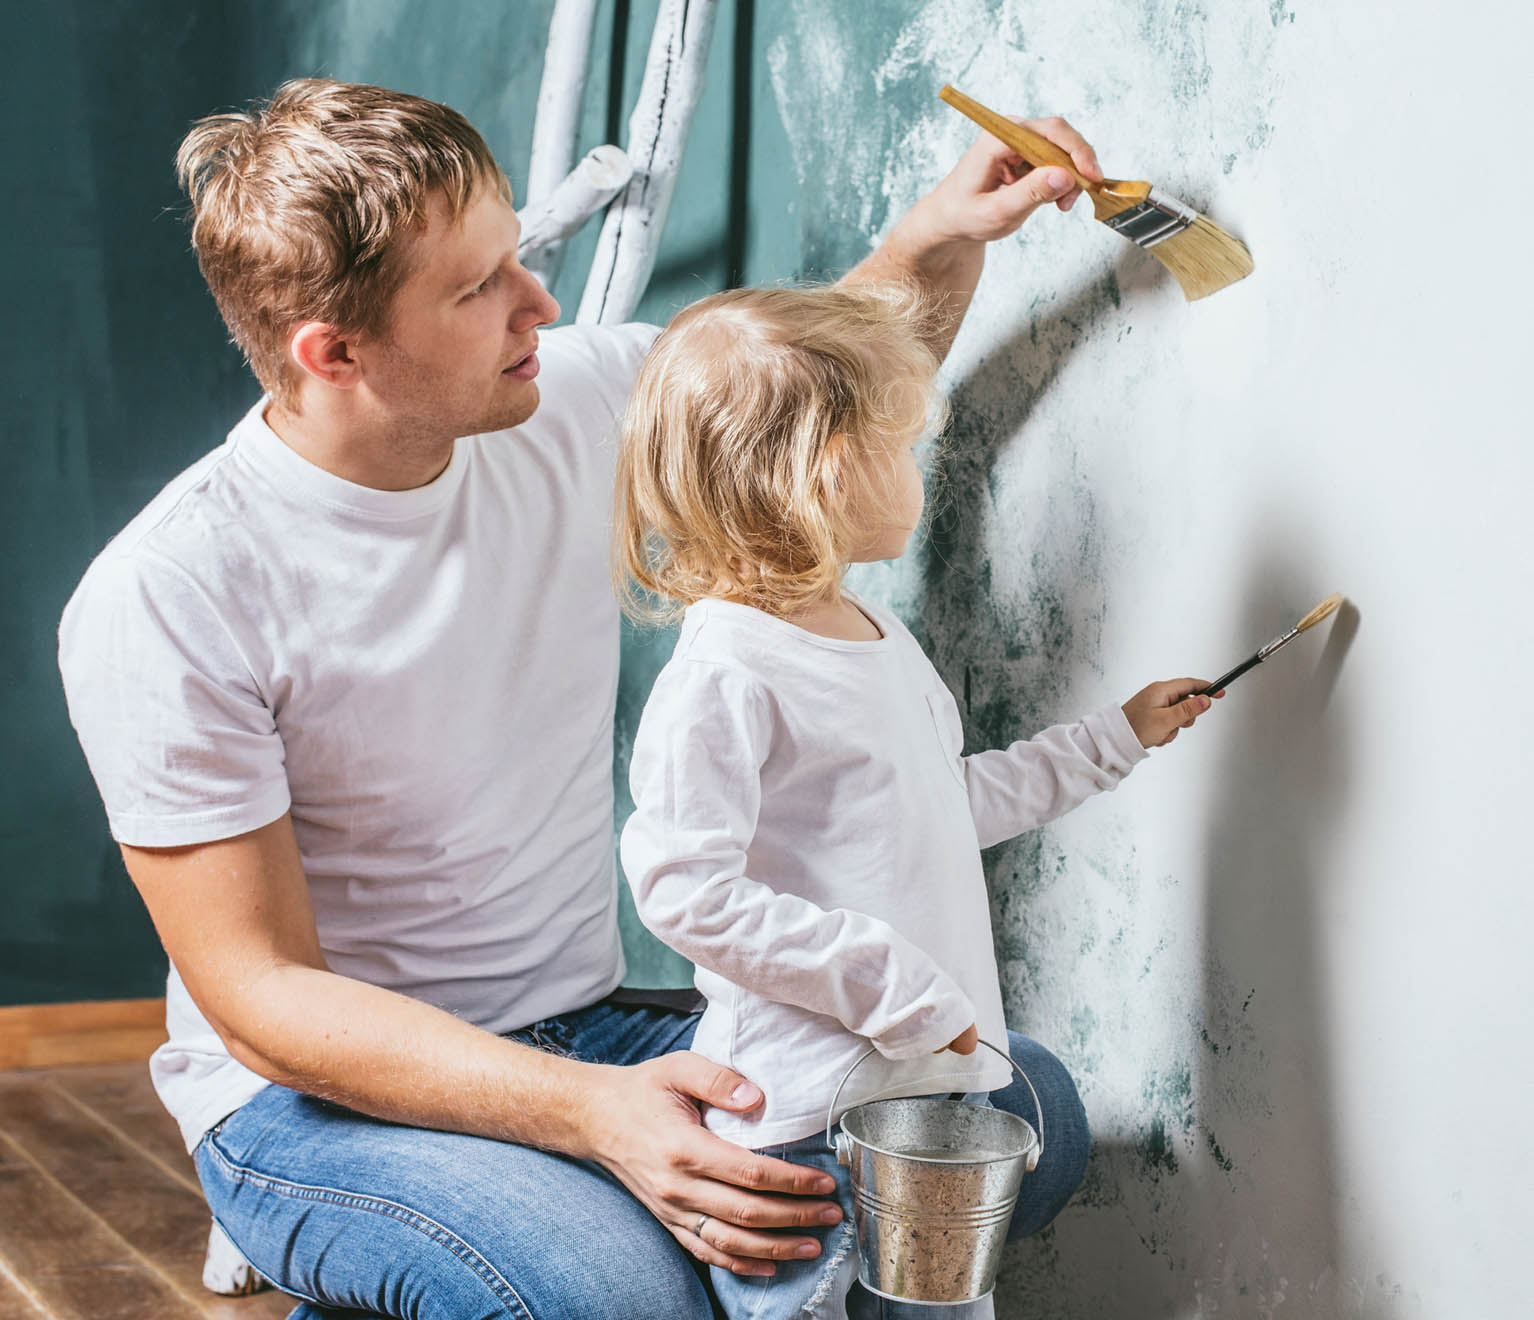 how to determine if you should remodel or move